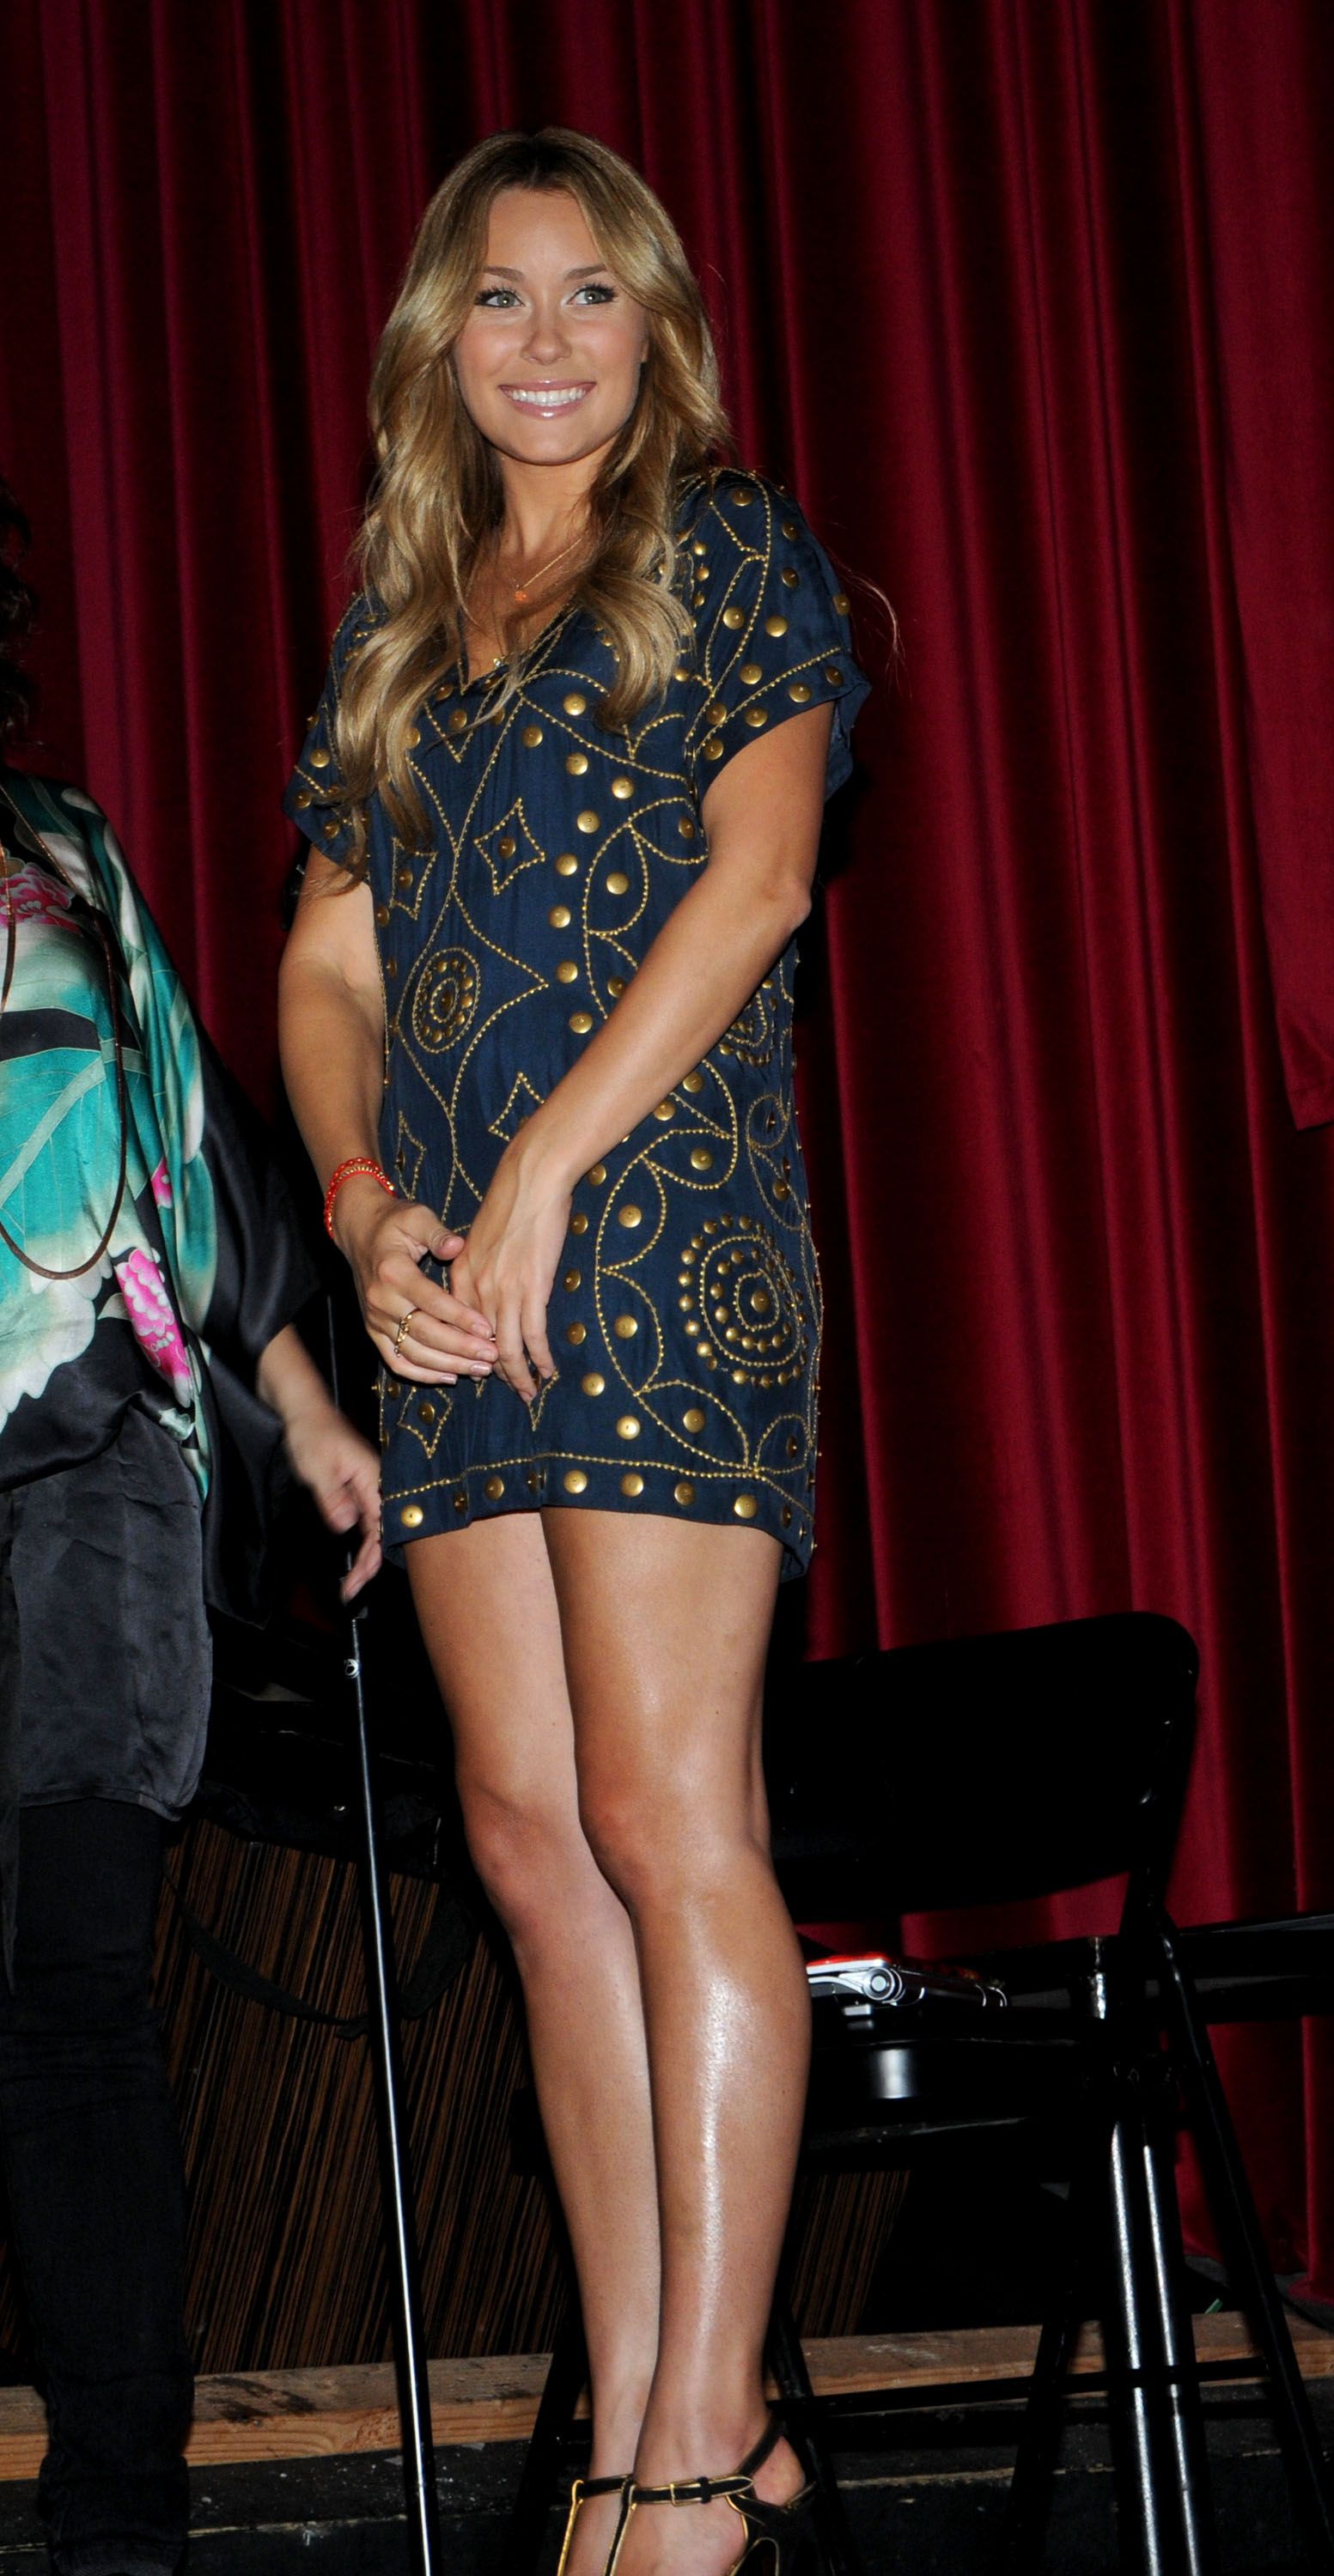 02368_Celebutopia-Lauren_Conrad-The_unveiling_of_Sony_VAIO93s_My_Graphic_Splash-05_122_744lo.jpg